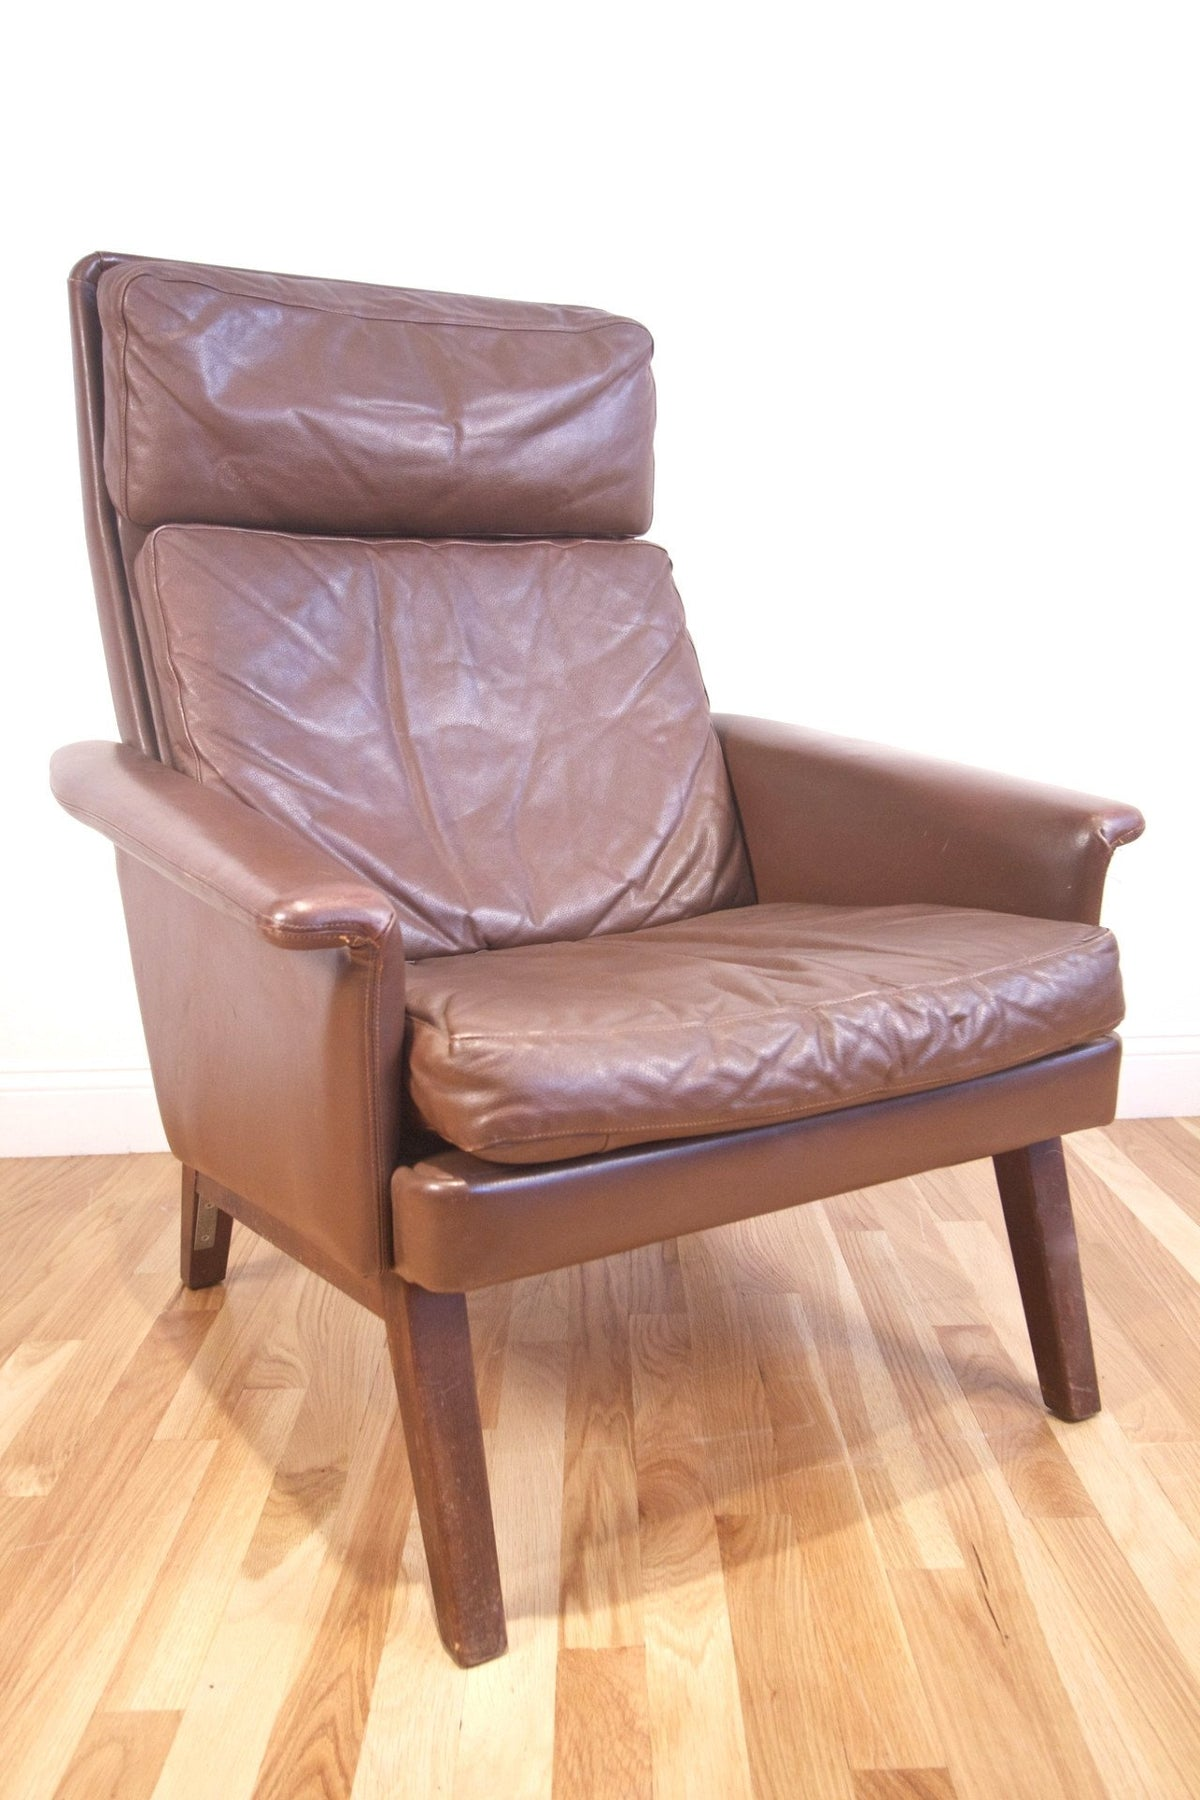 1960s Brown Leather High Back Chair - Diamonds & Rust